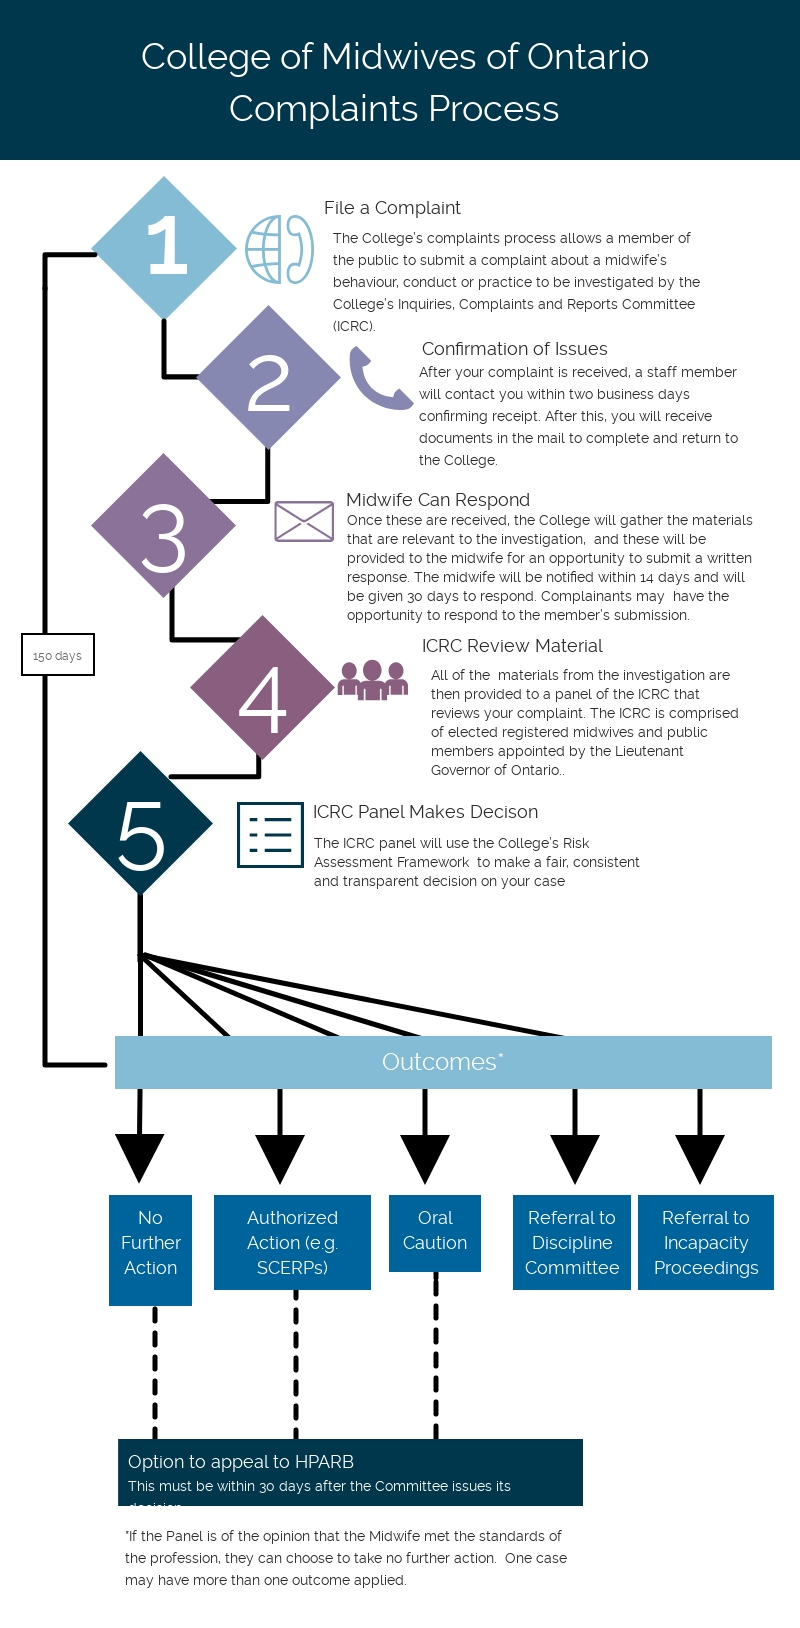 This image is an infographic that outlines the College of Midwives of Ontario's Complaints Process. There are five steps in this process with five potential outcomes.